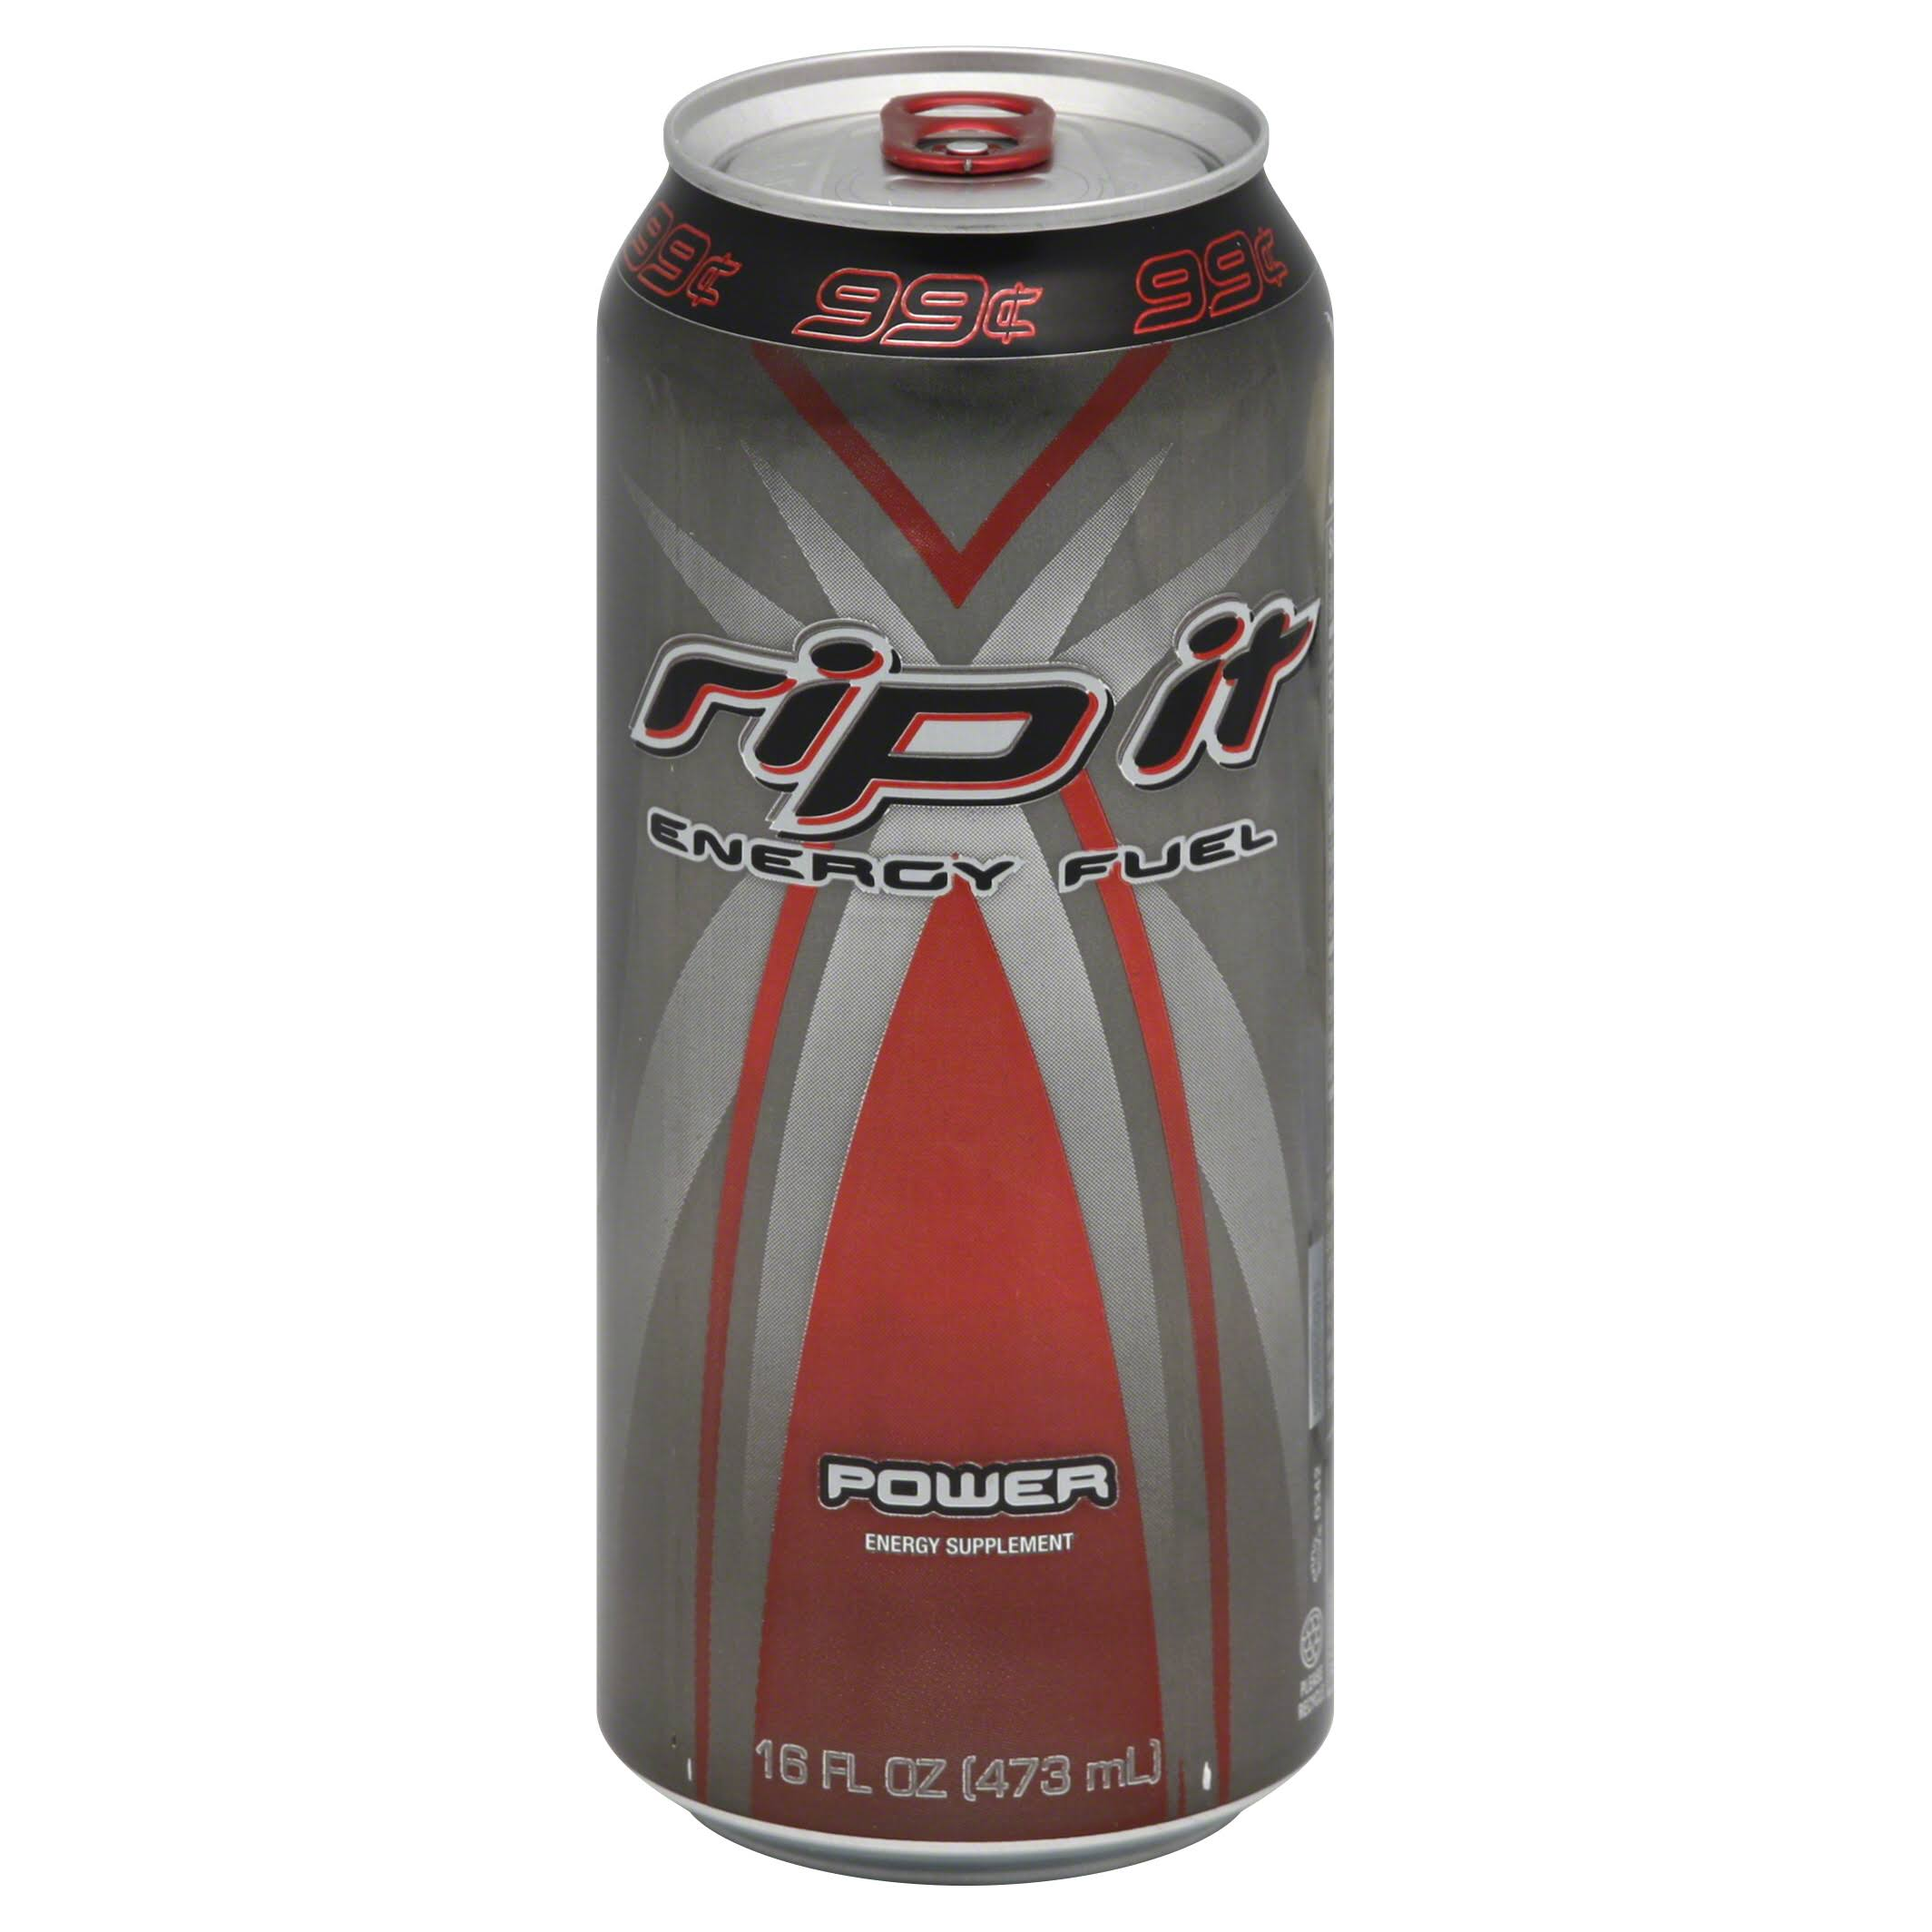 Rip It Energy Fuel, Power - 16 fl oz